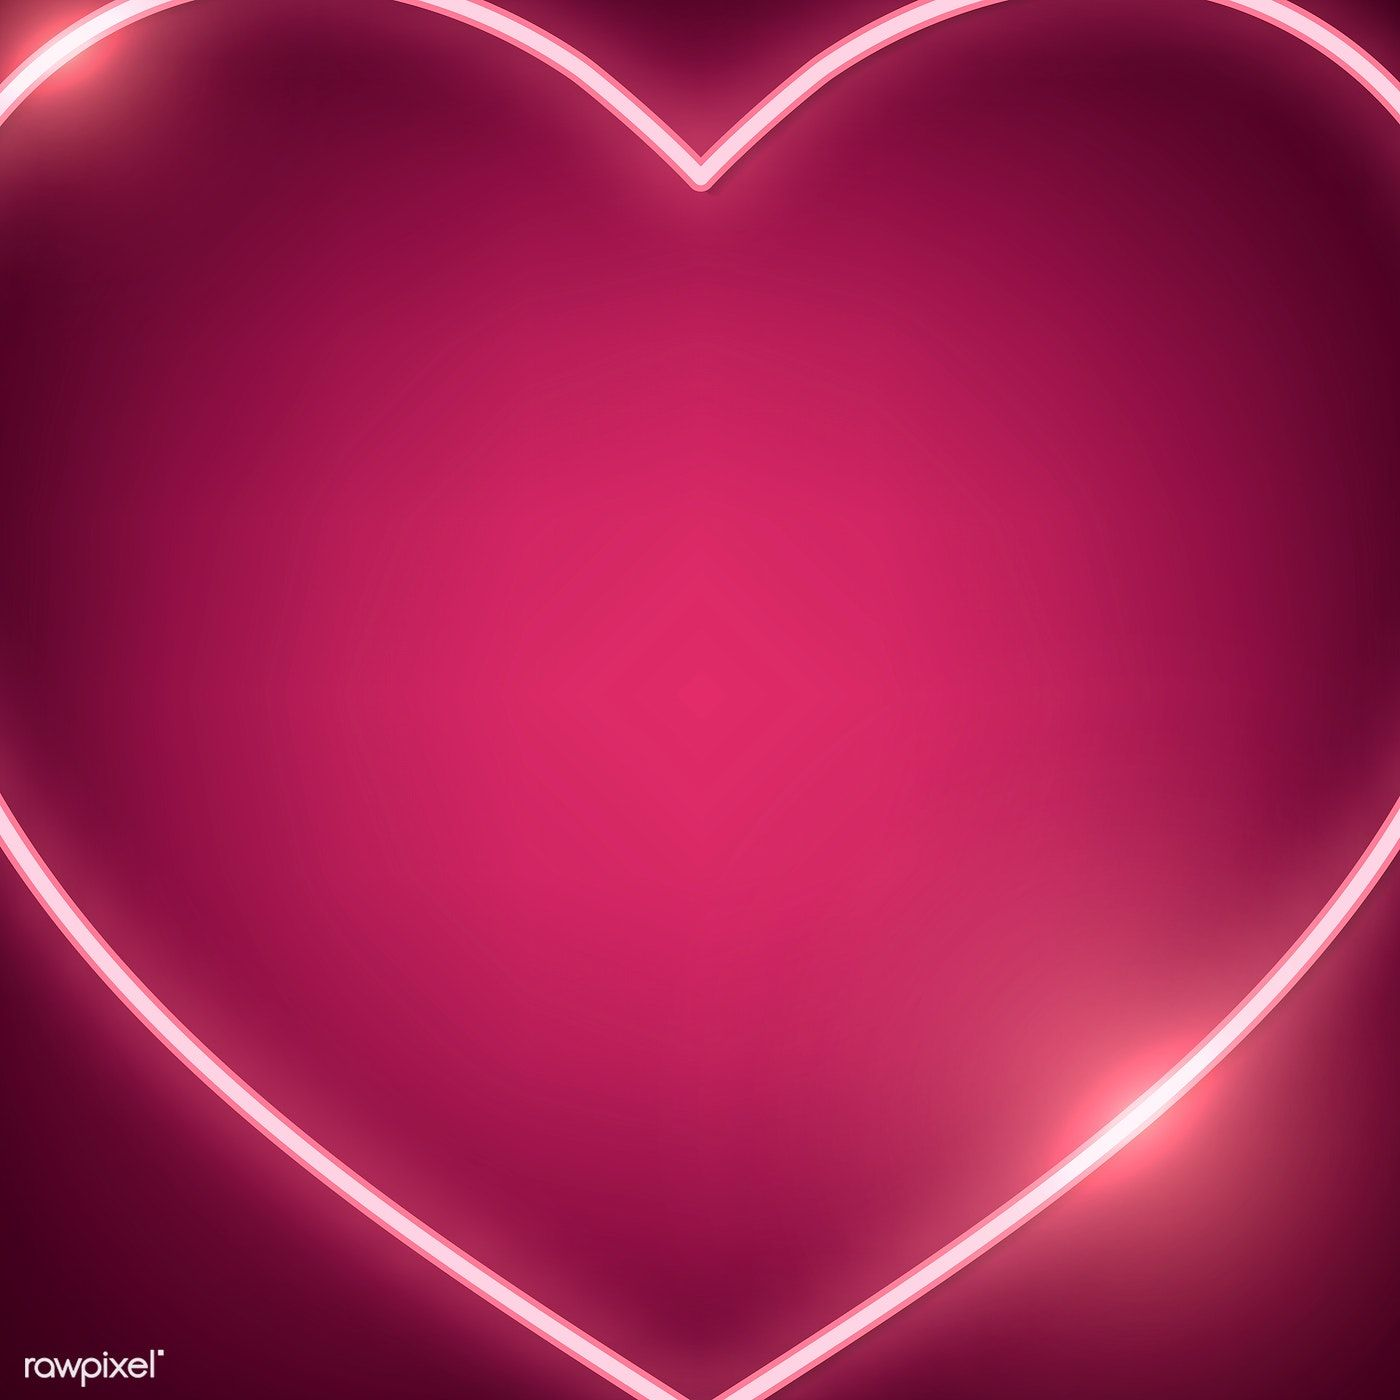 Neon light heart icon on pink background free image by